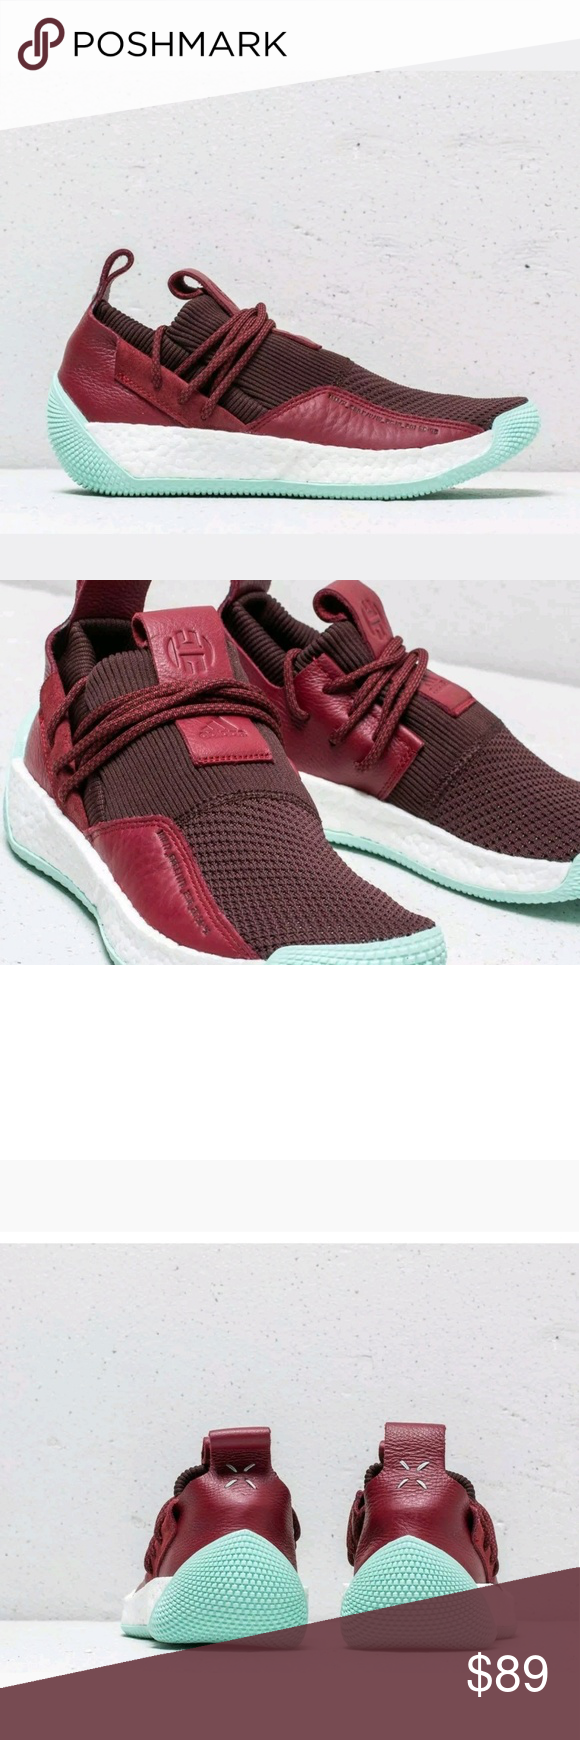 f9f06408e Adidas Harden LS 2 Lace Red Basketball Shoes Sz 10 New Adidas Harden LS 2  Lace